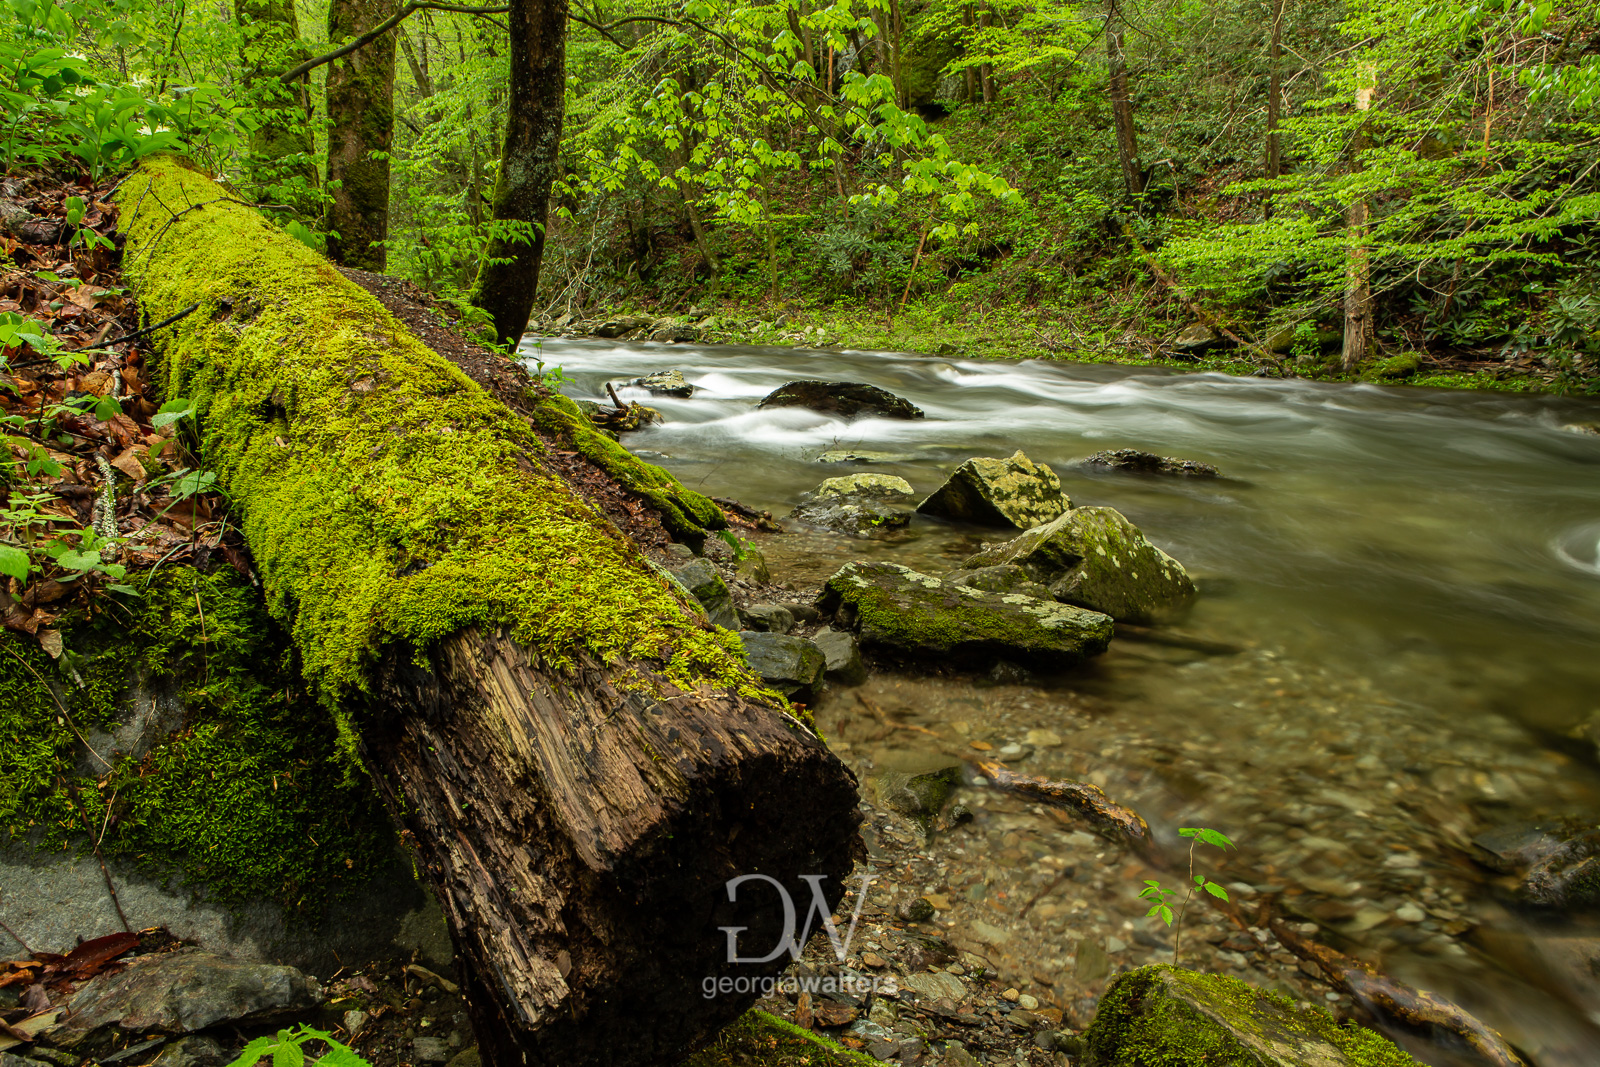 Moss covered log laying on the ground by a flowing creek.